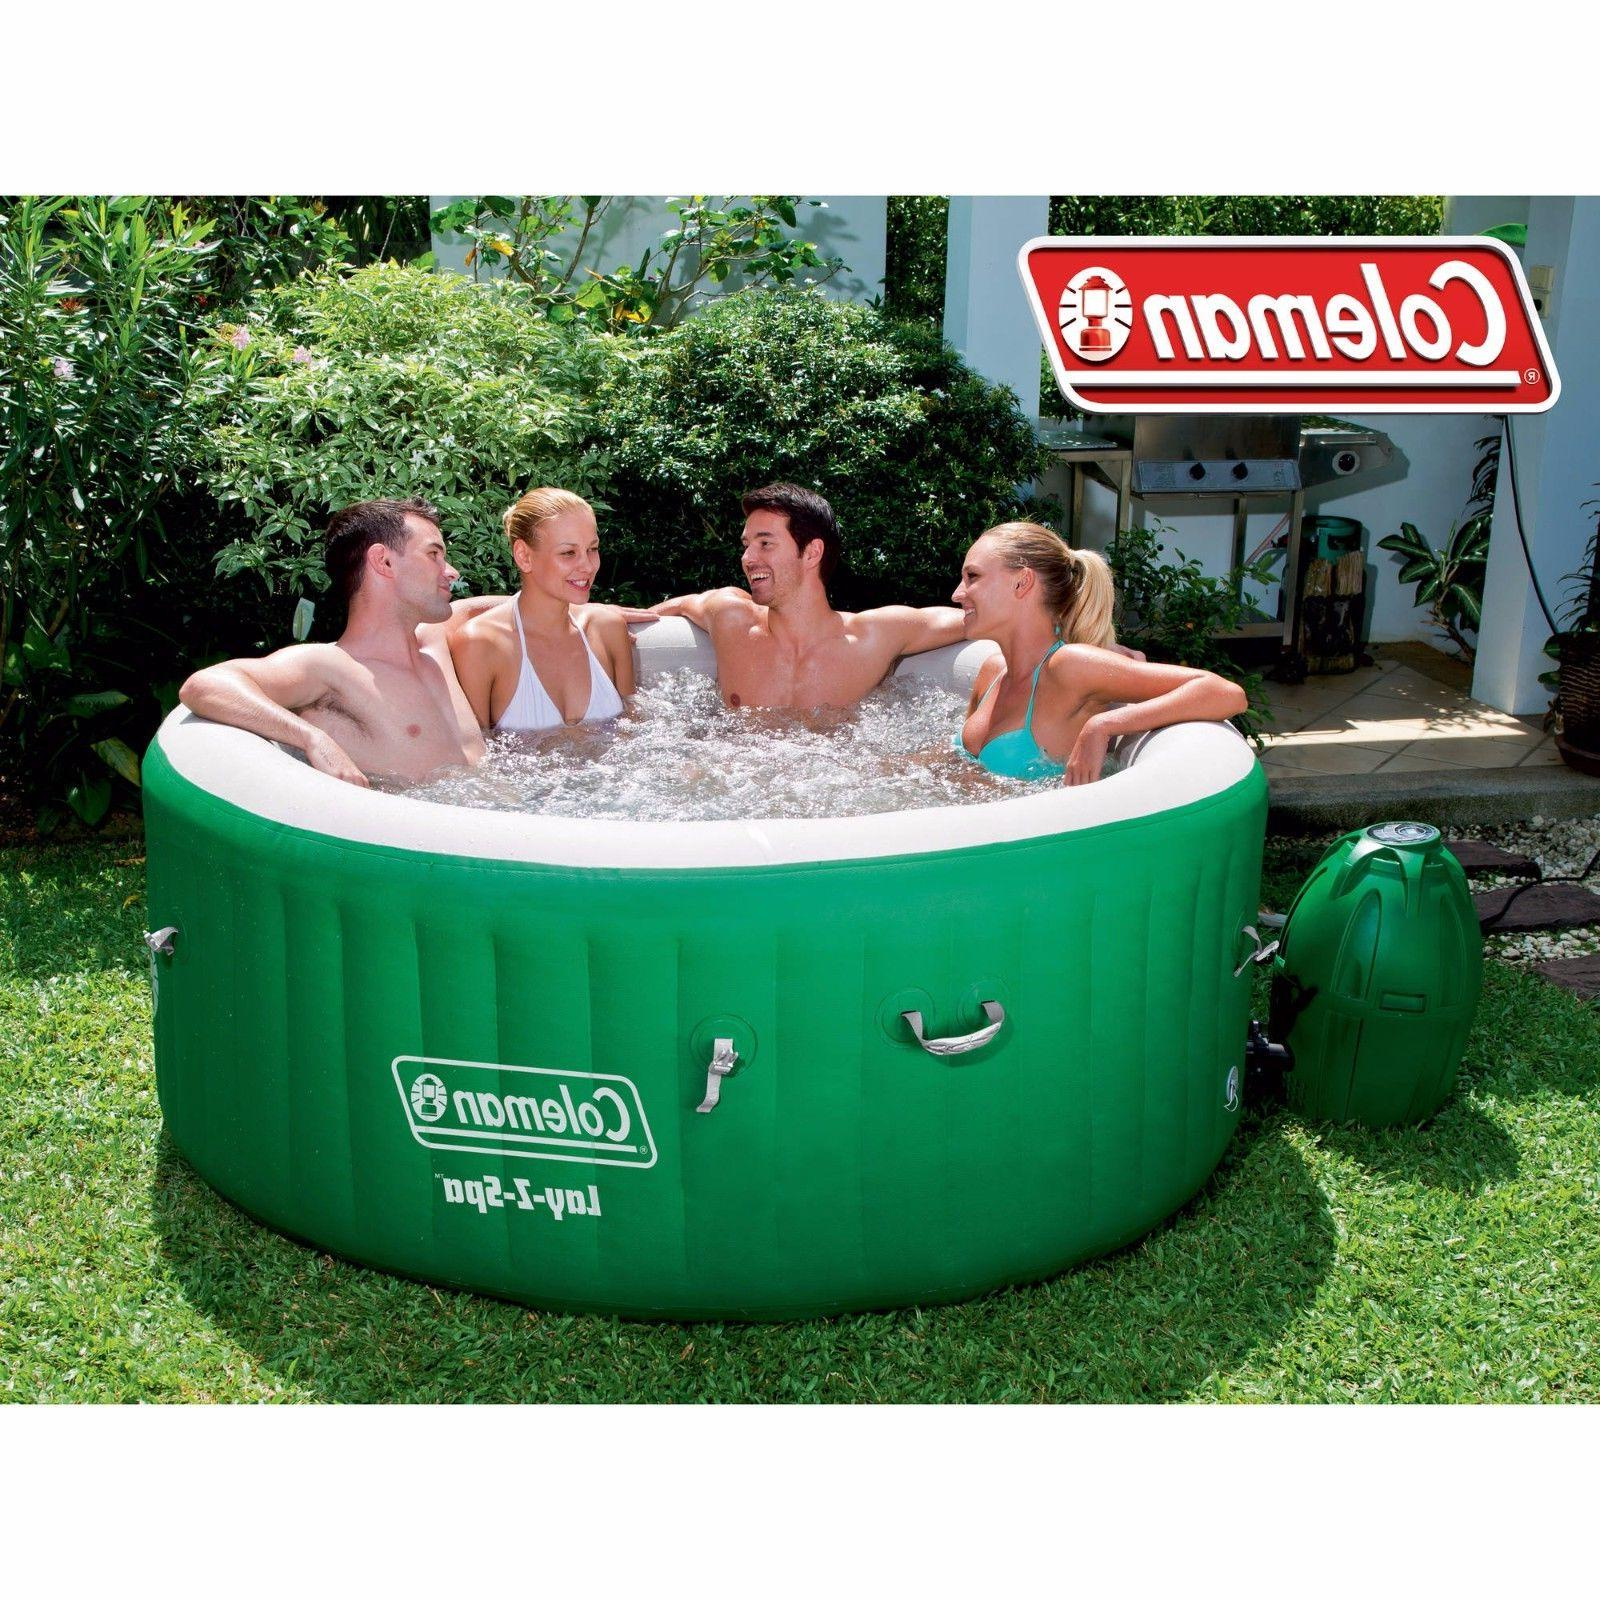 Portable Tube Coleman Lay-Z Massage Relax Outdoor 4-6 People